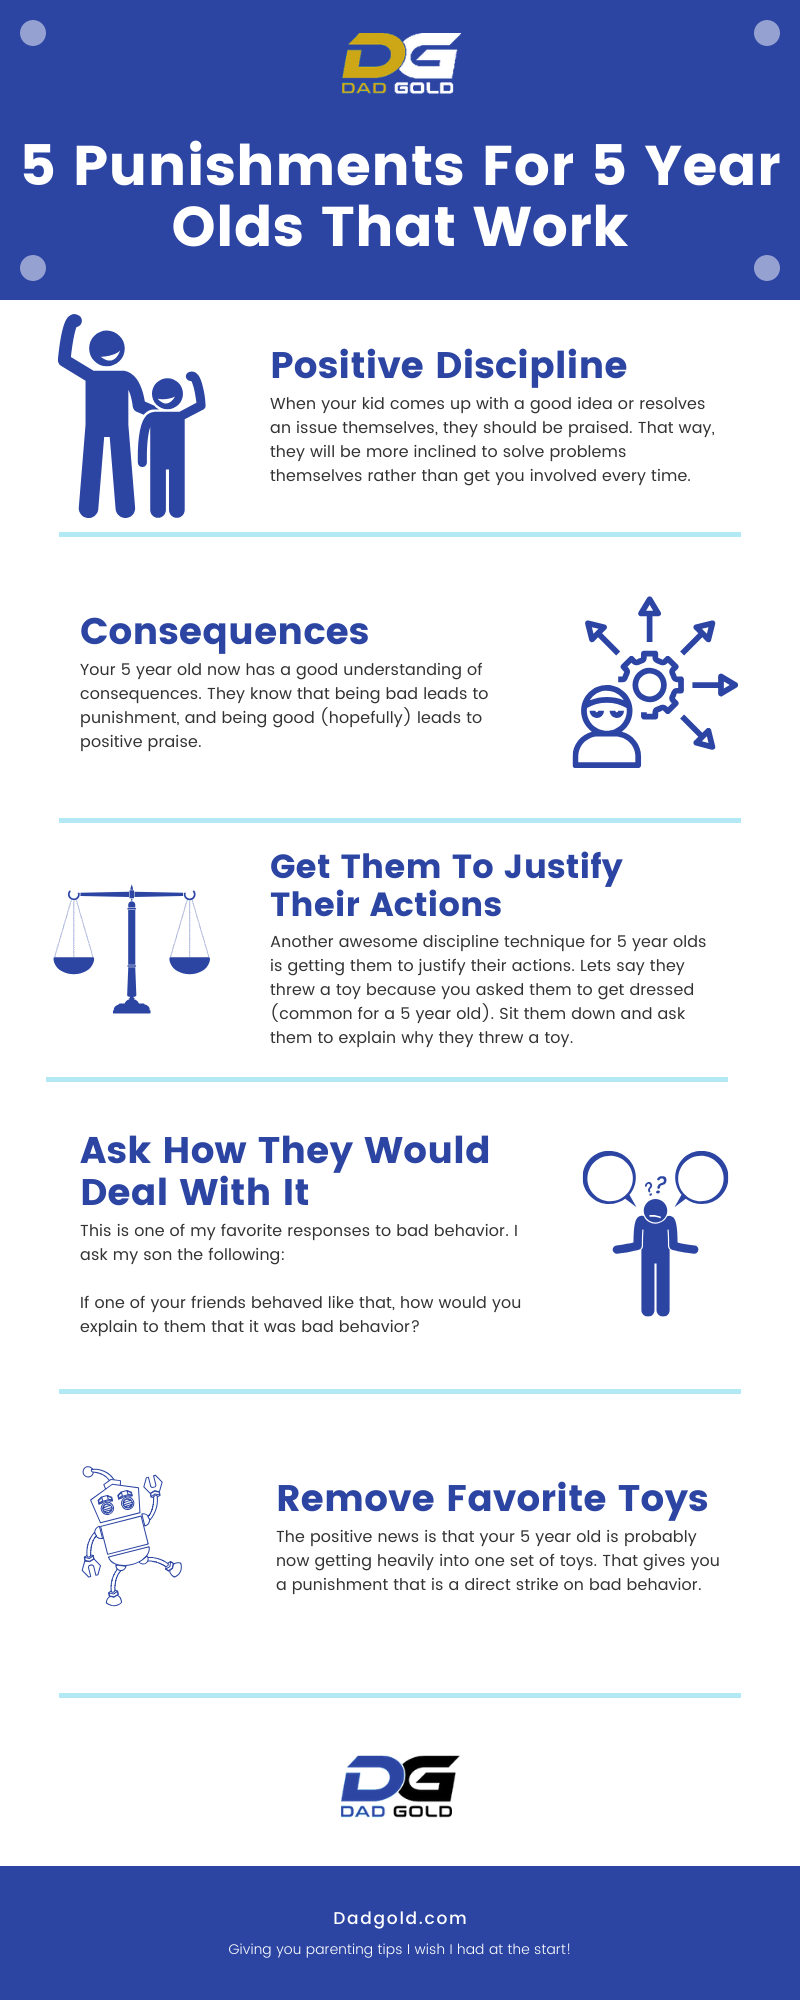 5 Punishments For 5 Year Olds That Work Infographic